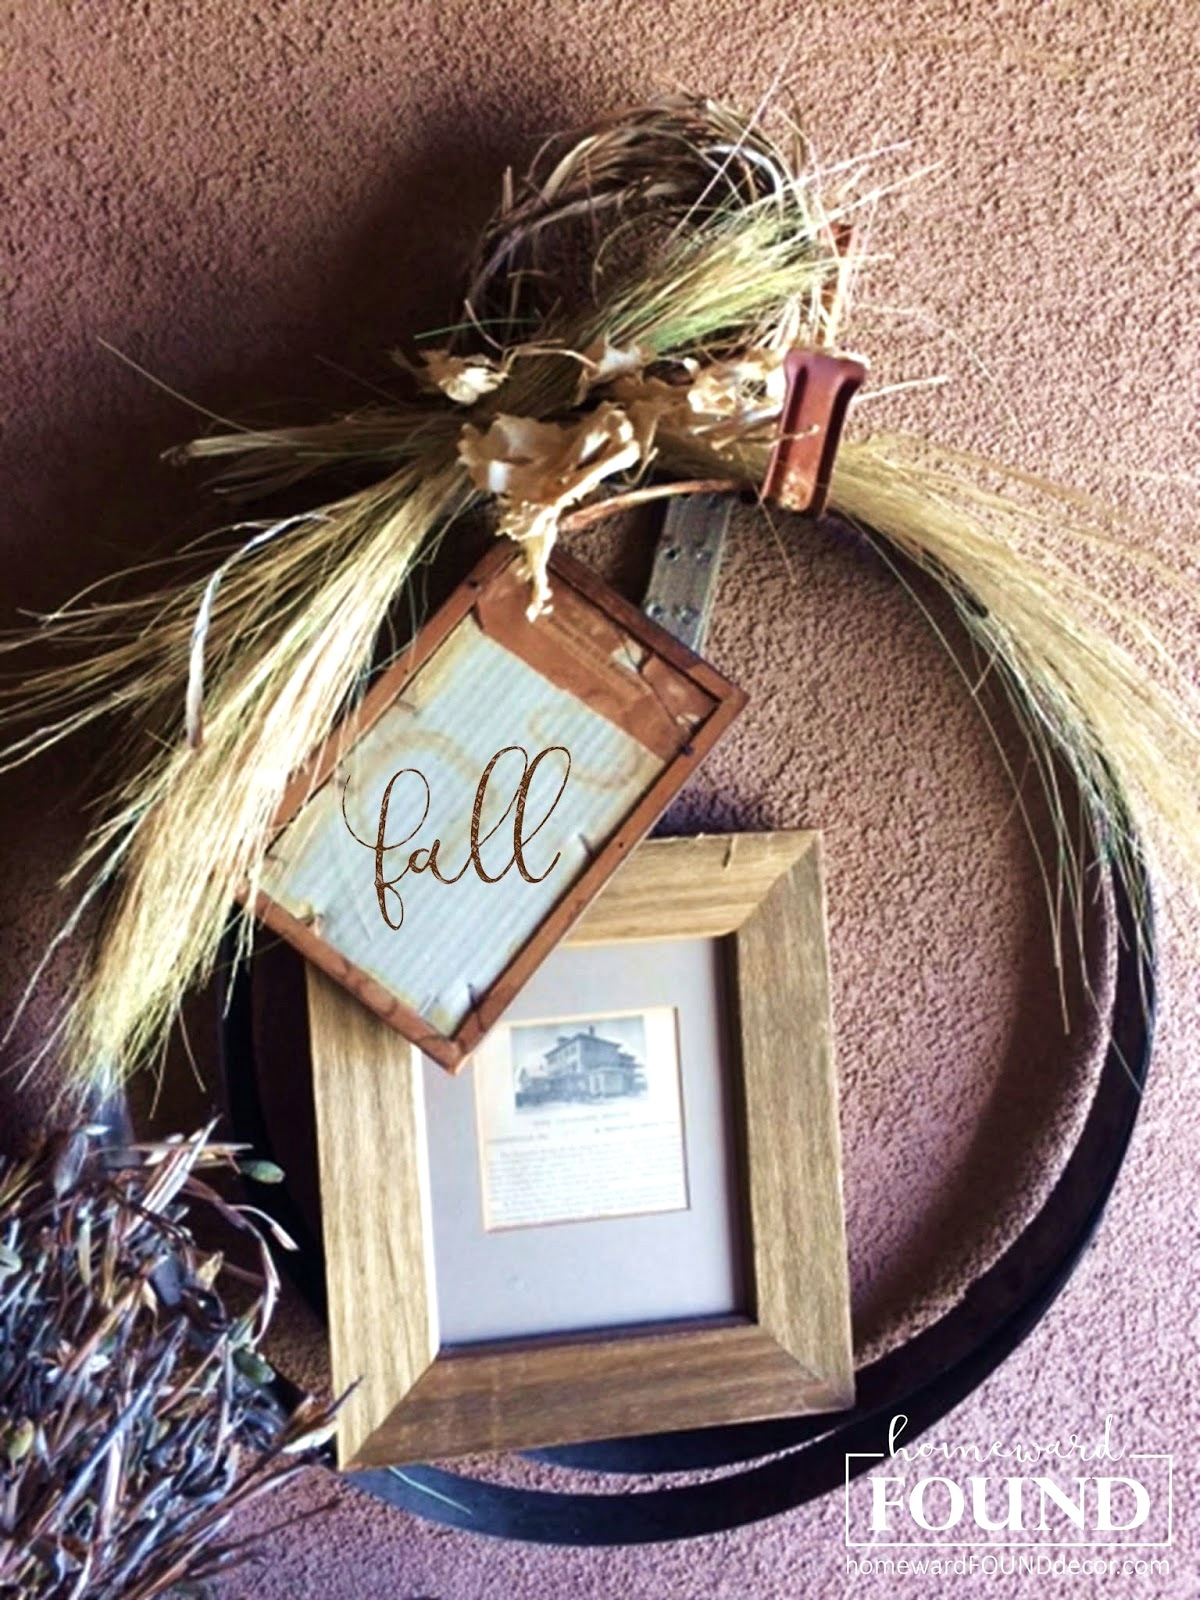 Barrel ring junk fall wreath by Homeward Found, featured on Funky Junk Interiors